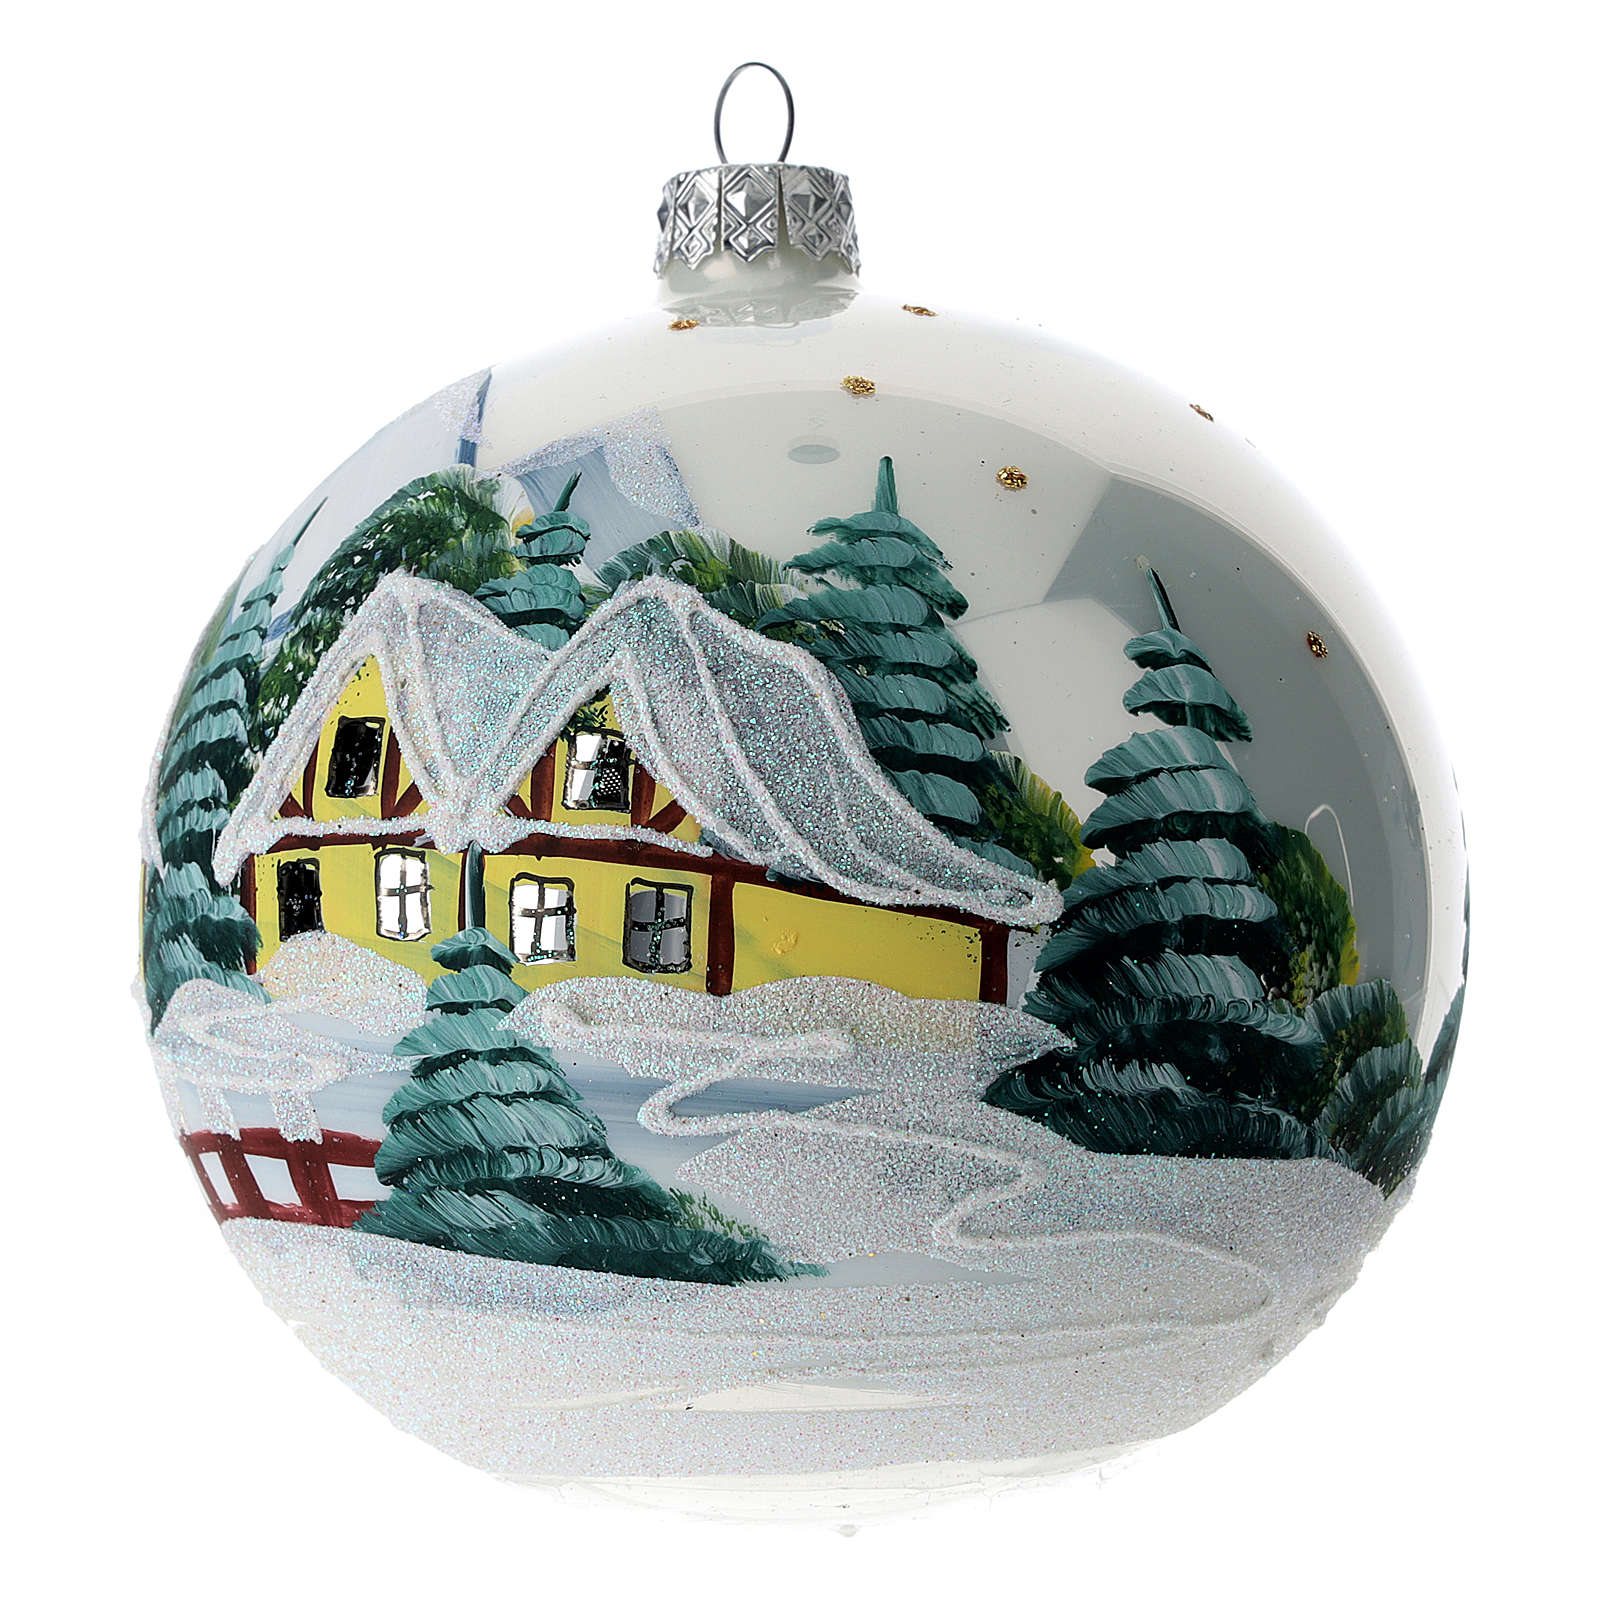 Blown glass ball Christmas ornament with snowy mountains 12 cm 4